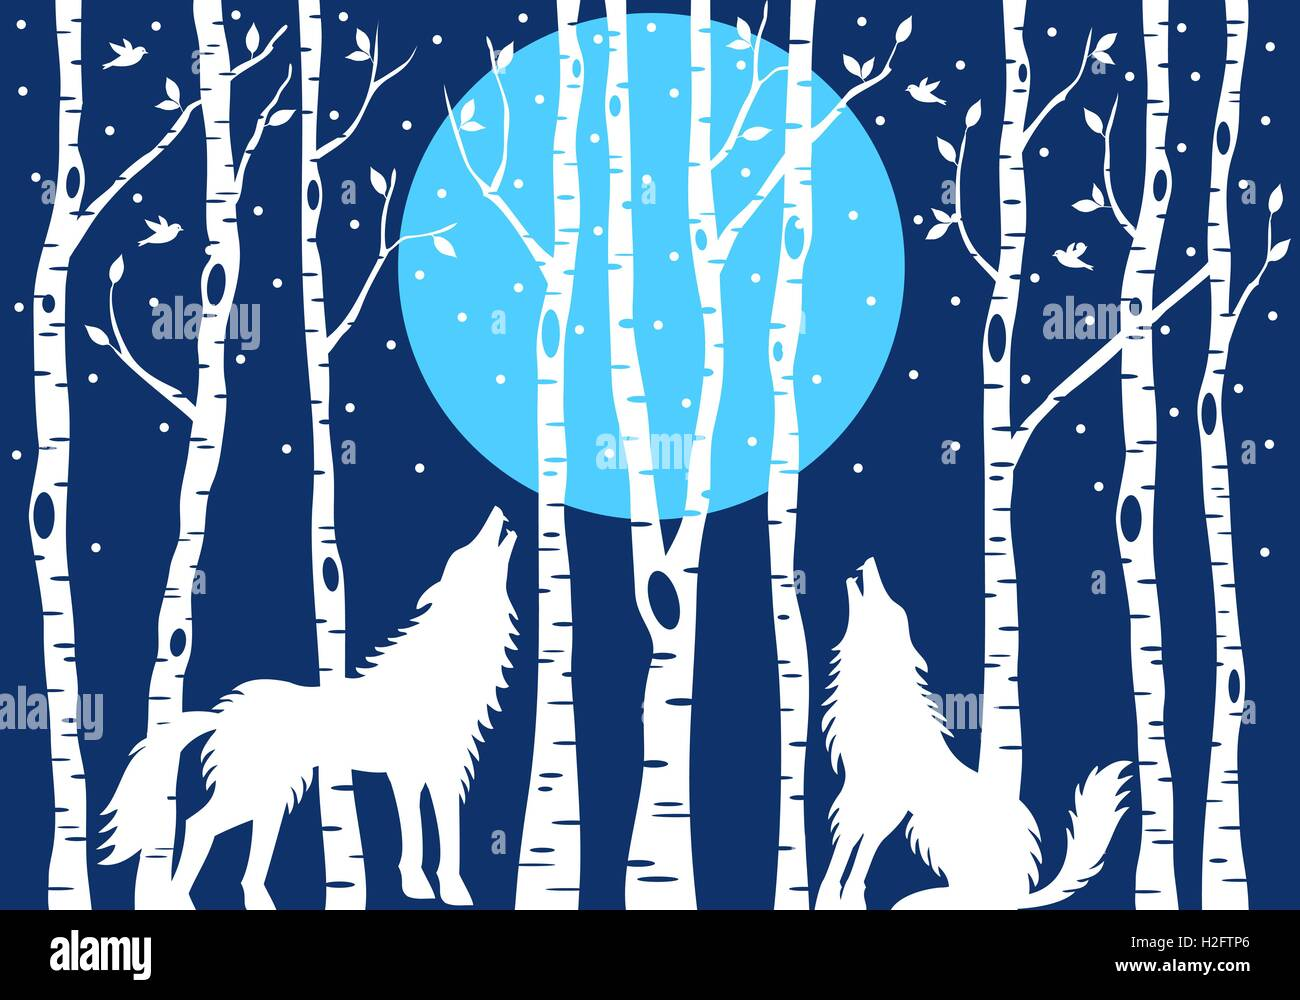 Howling wolf with blue moon and white birch trees, vector illustration - Stock Image